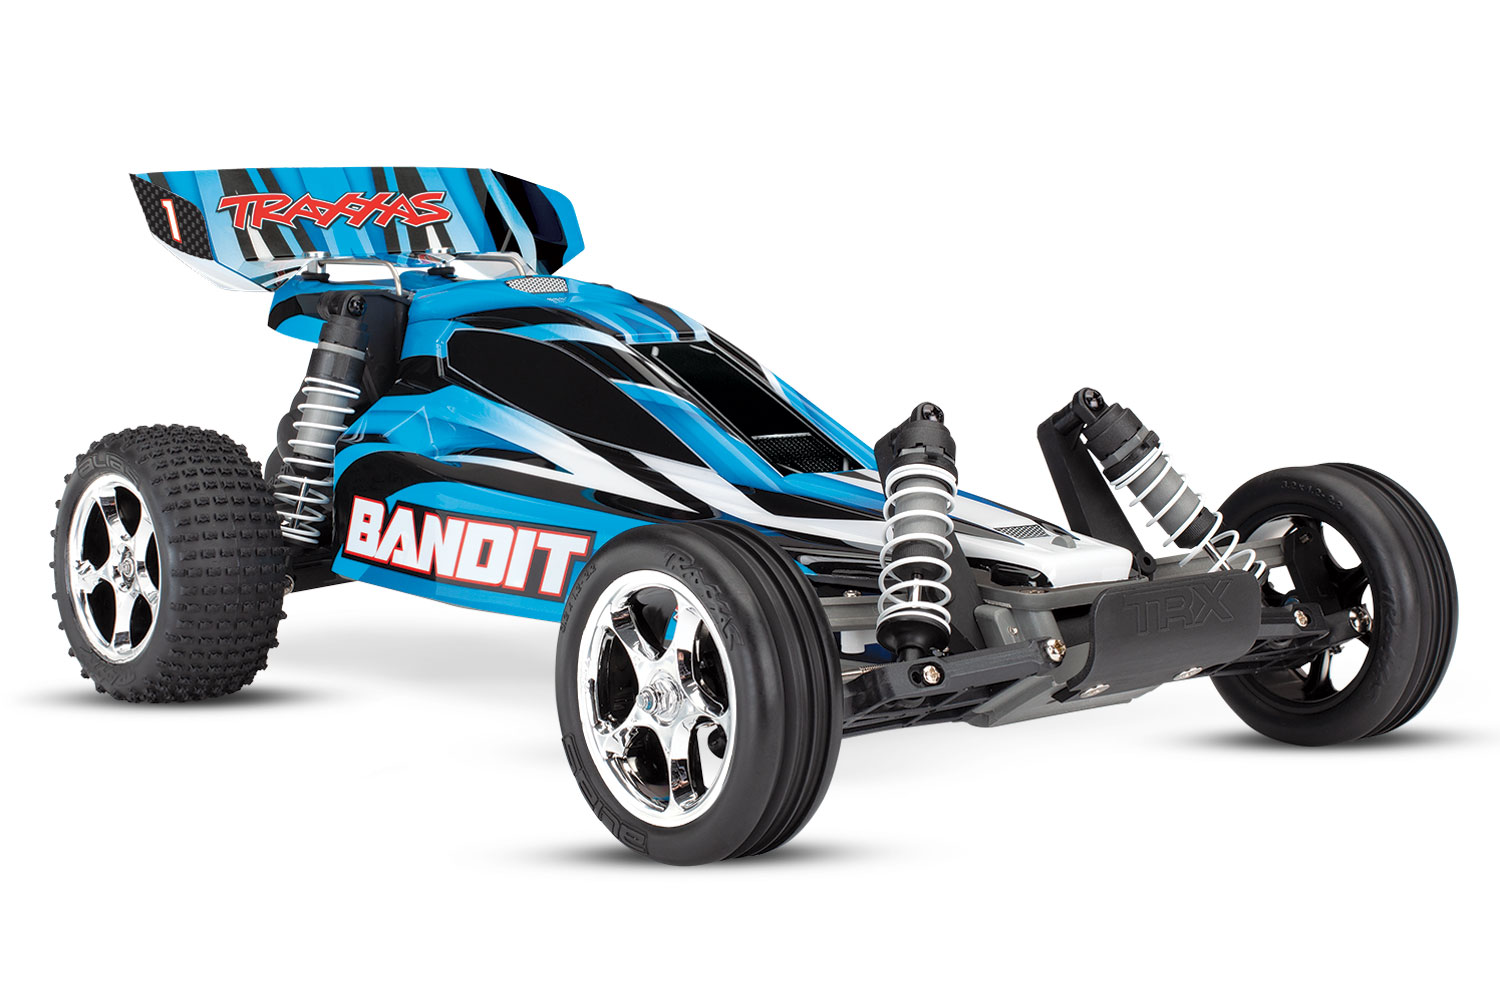 Traxxas Bandit 2WD 1/10 RTR TQ Blue – With battery/Charger  #24054-1